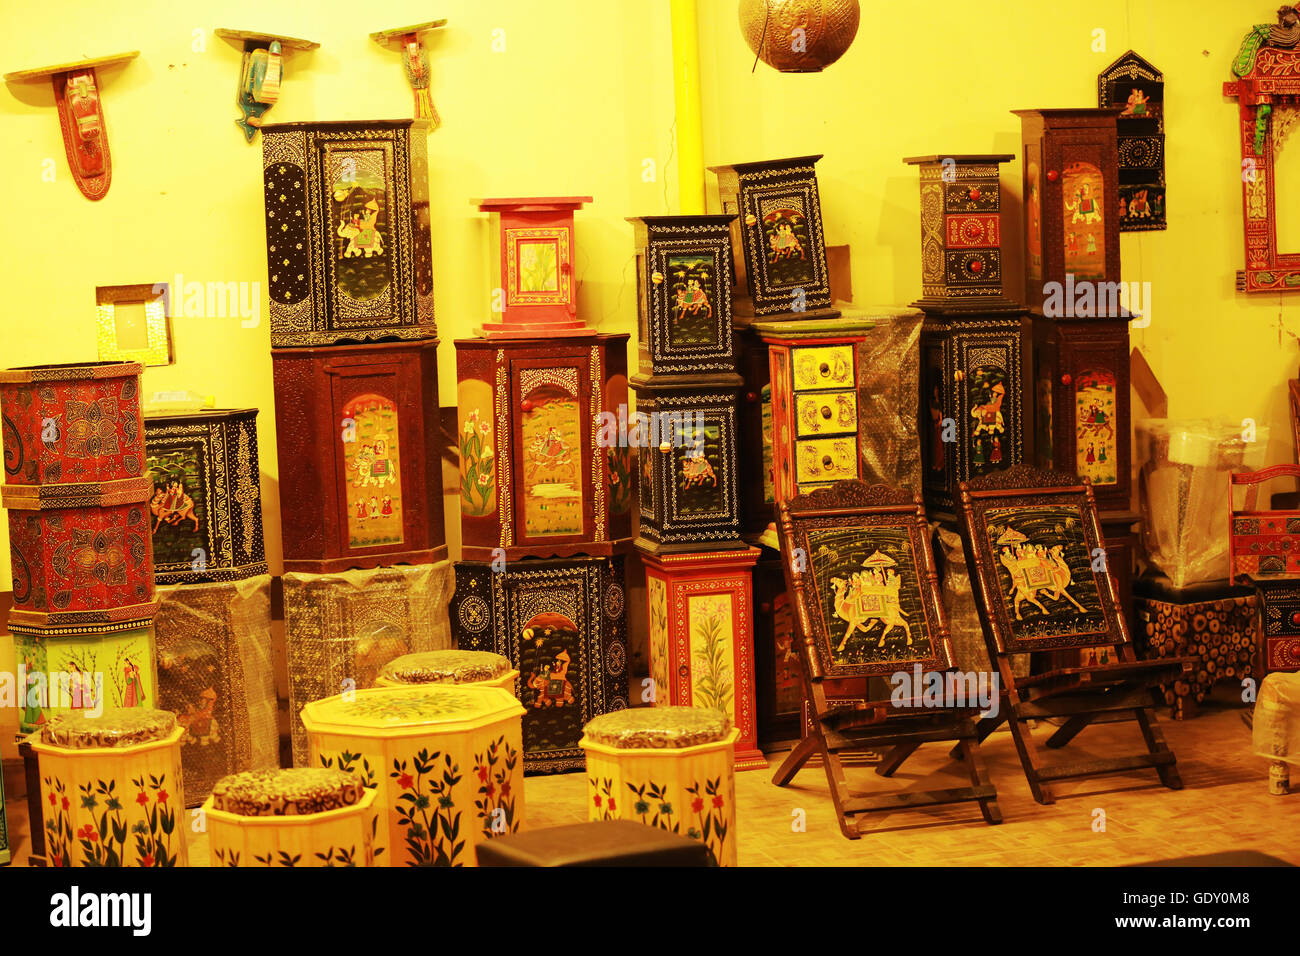 Gift shop of traditional Rajasthani handicraft boxes Stock Photo